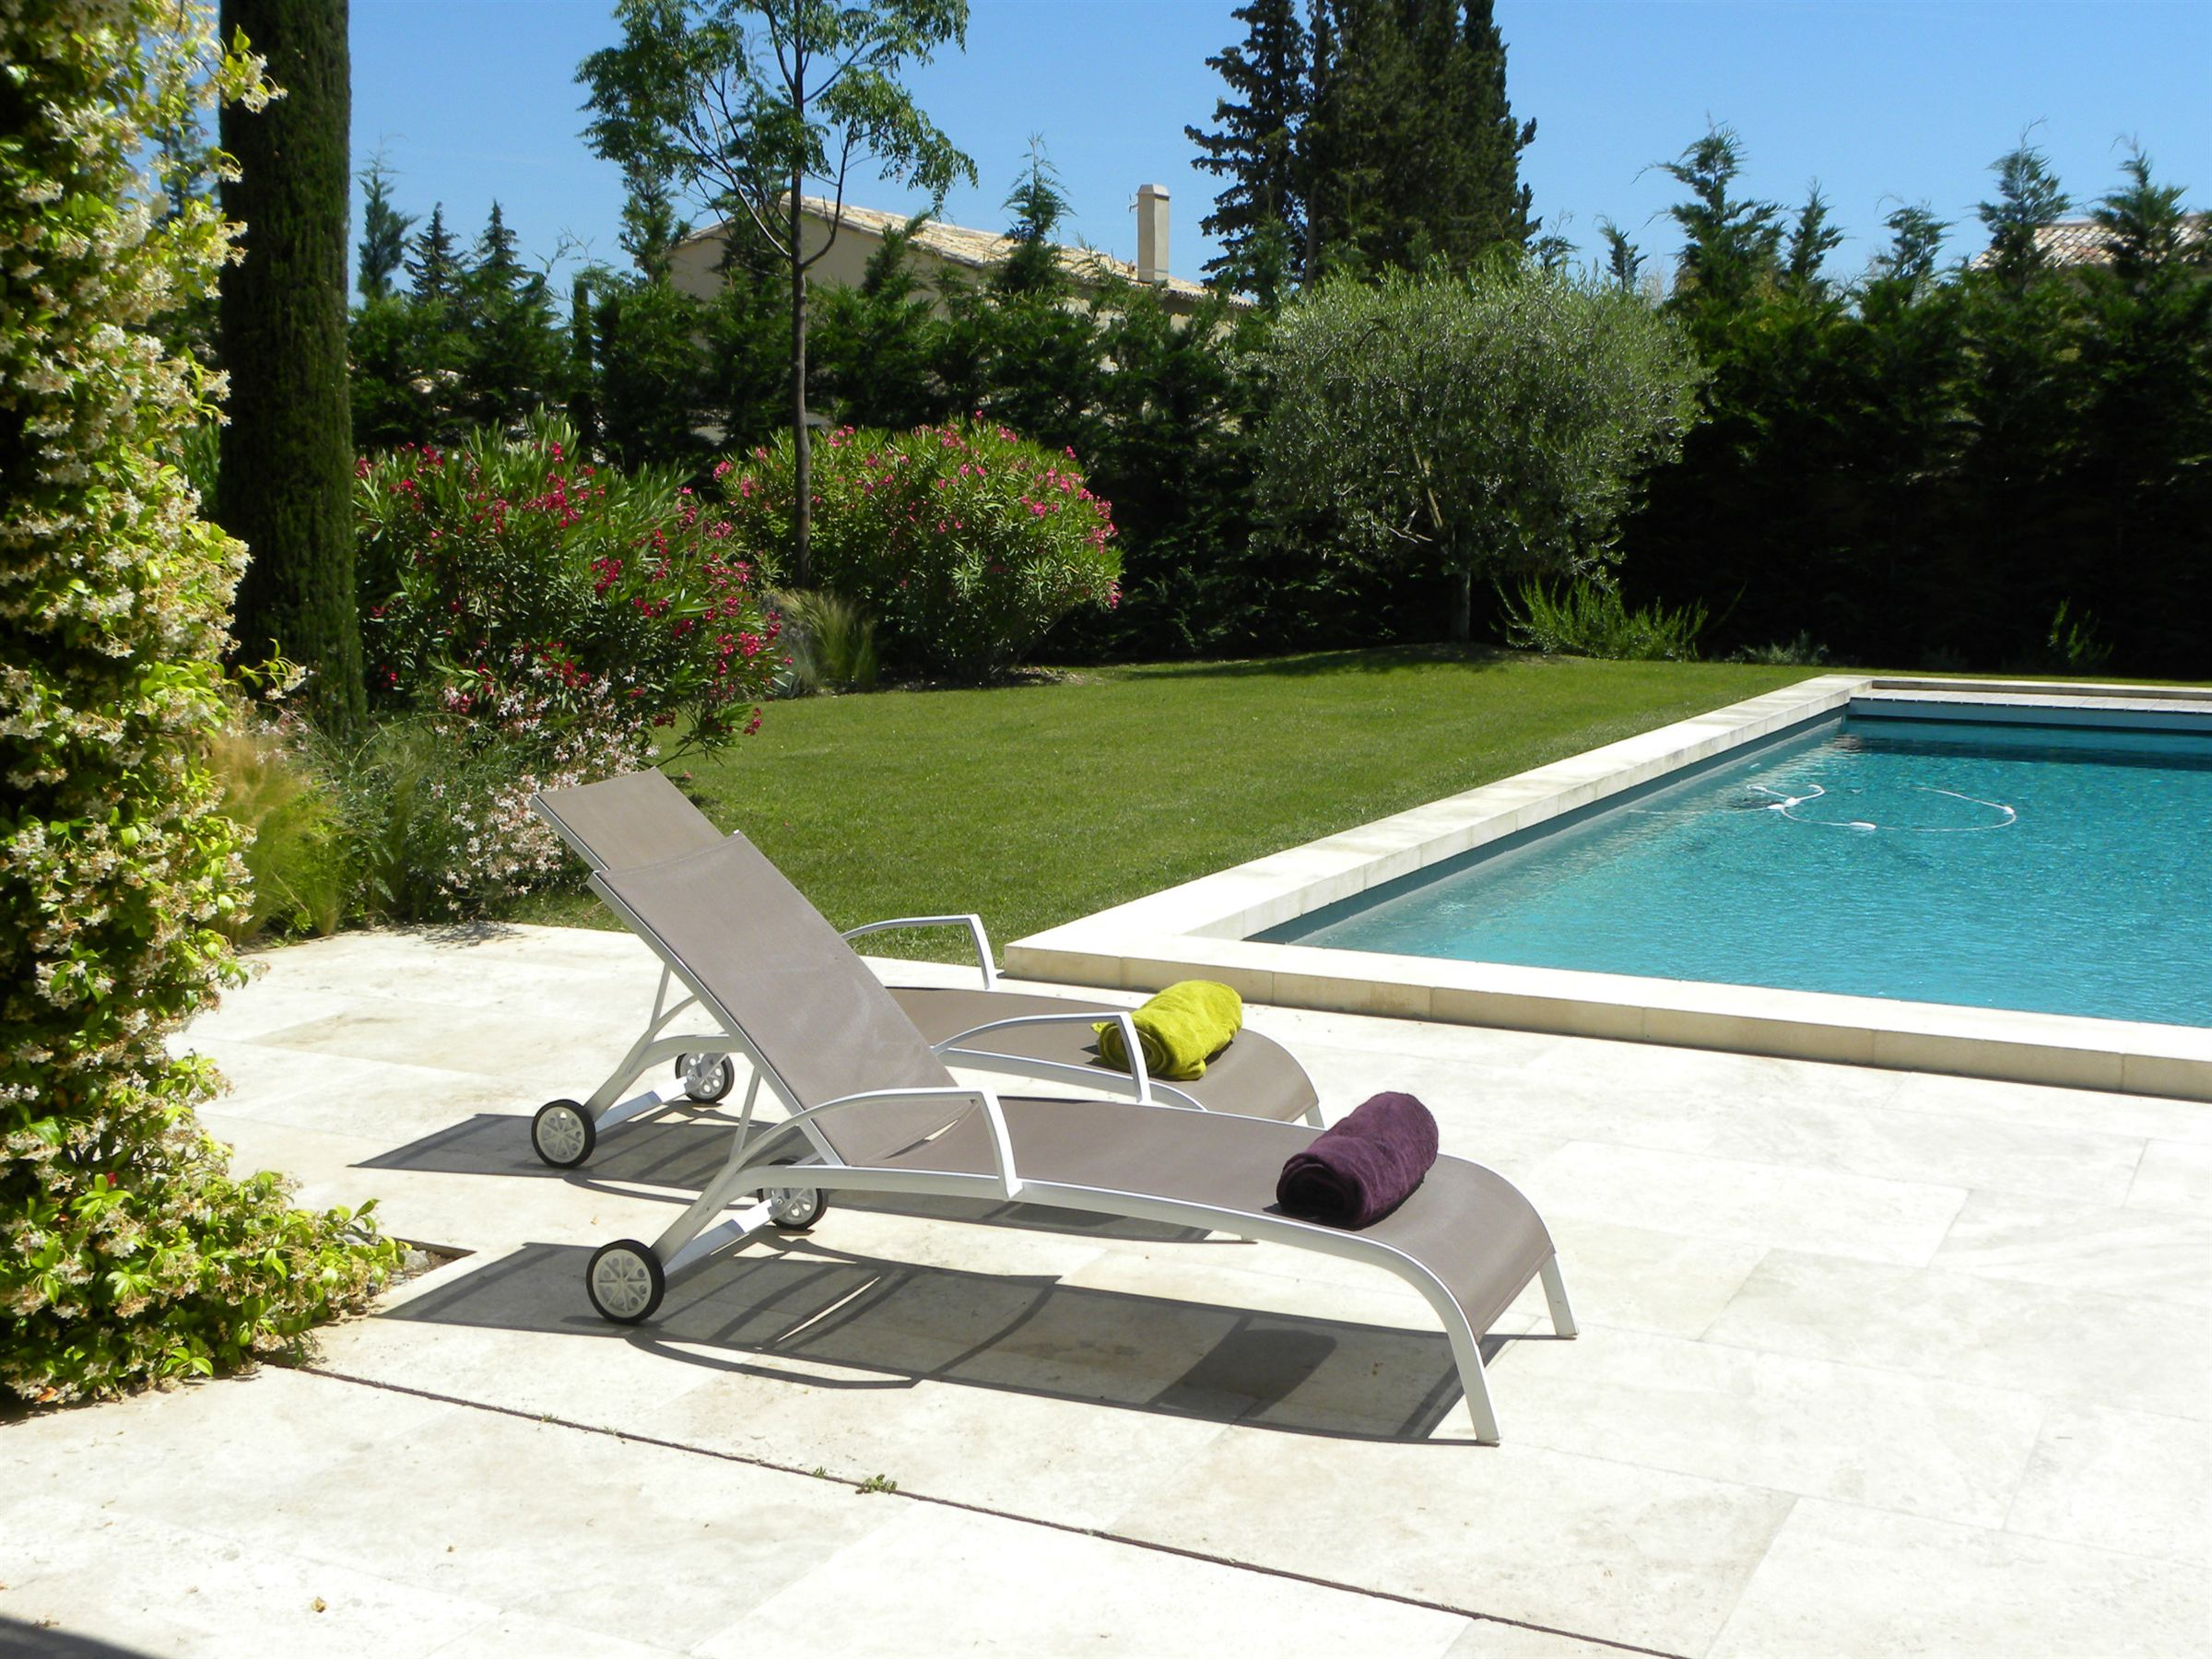 Property Of Charming renovated townhouse with swimming pool in Provence